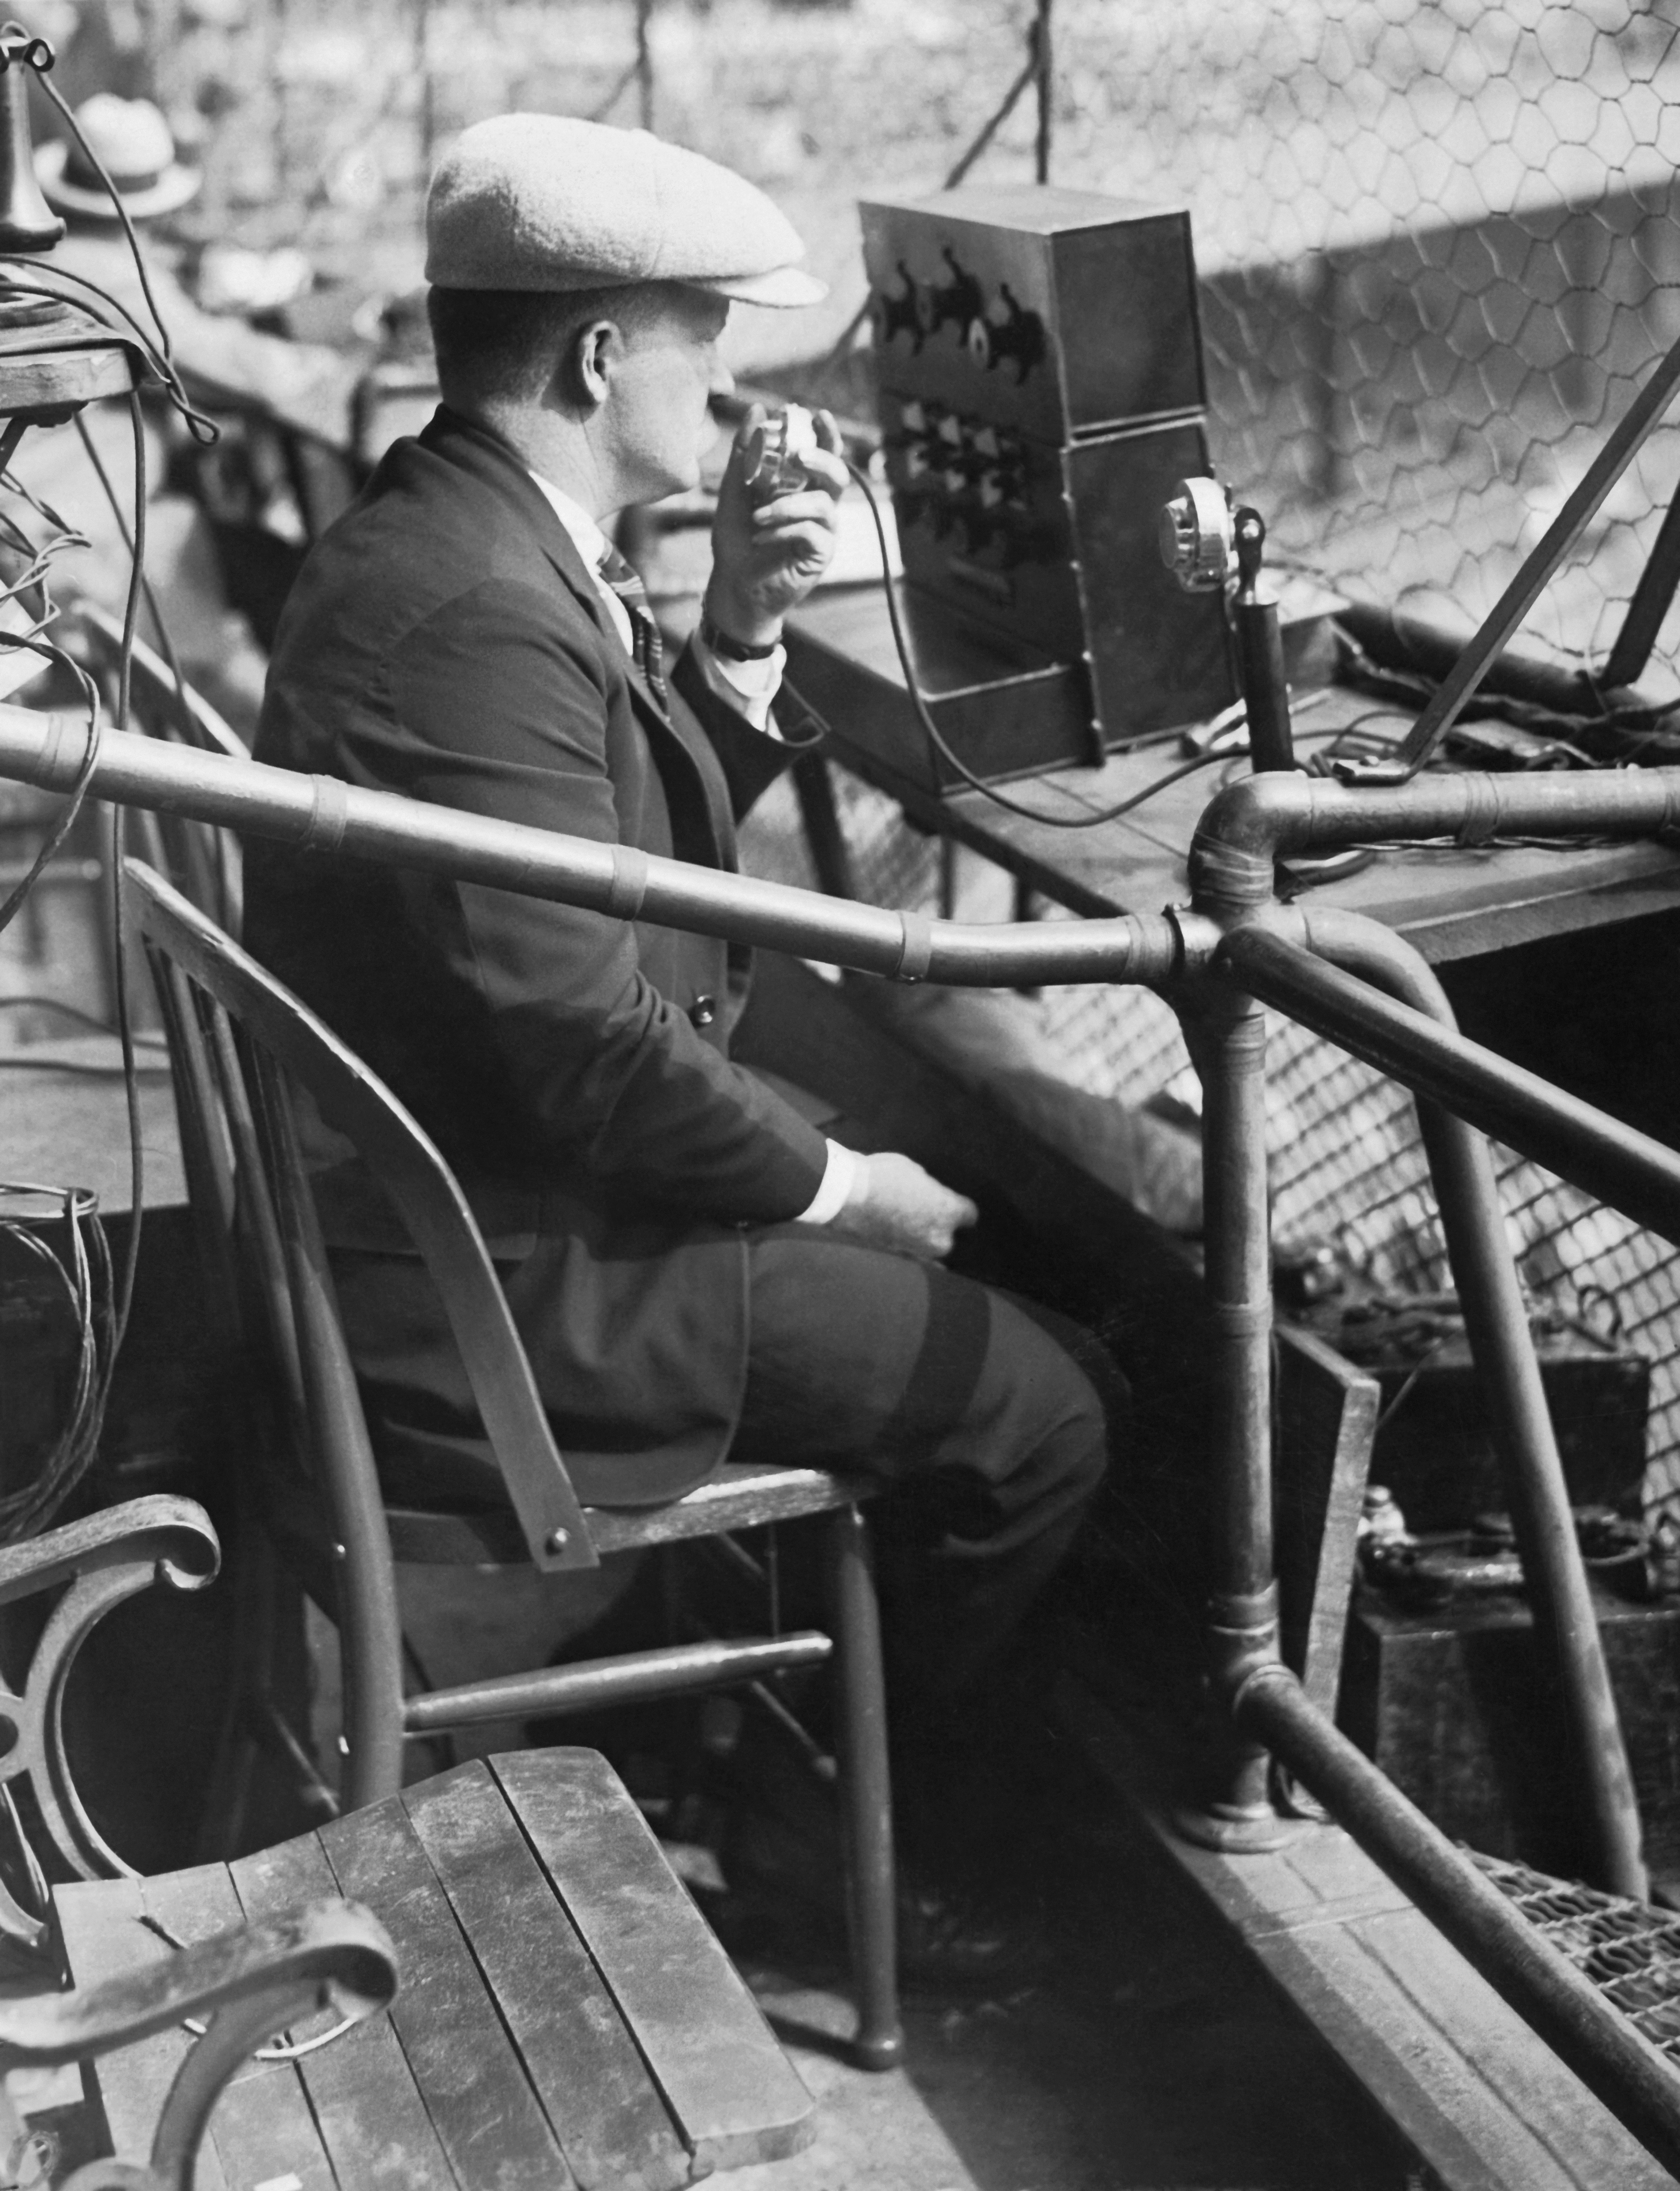 An AT&T engineer tests out an equipment for broadcasting the third game of the 1924 World Series at the Polo Grounds in New York City on Oct. 6, 1924.